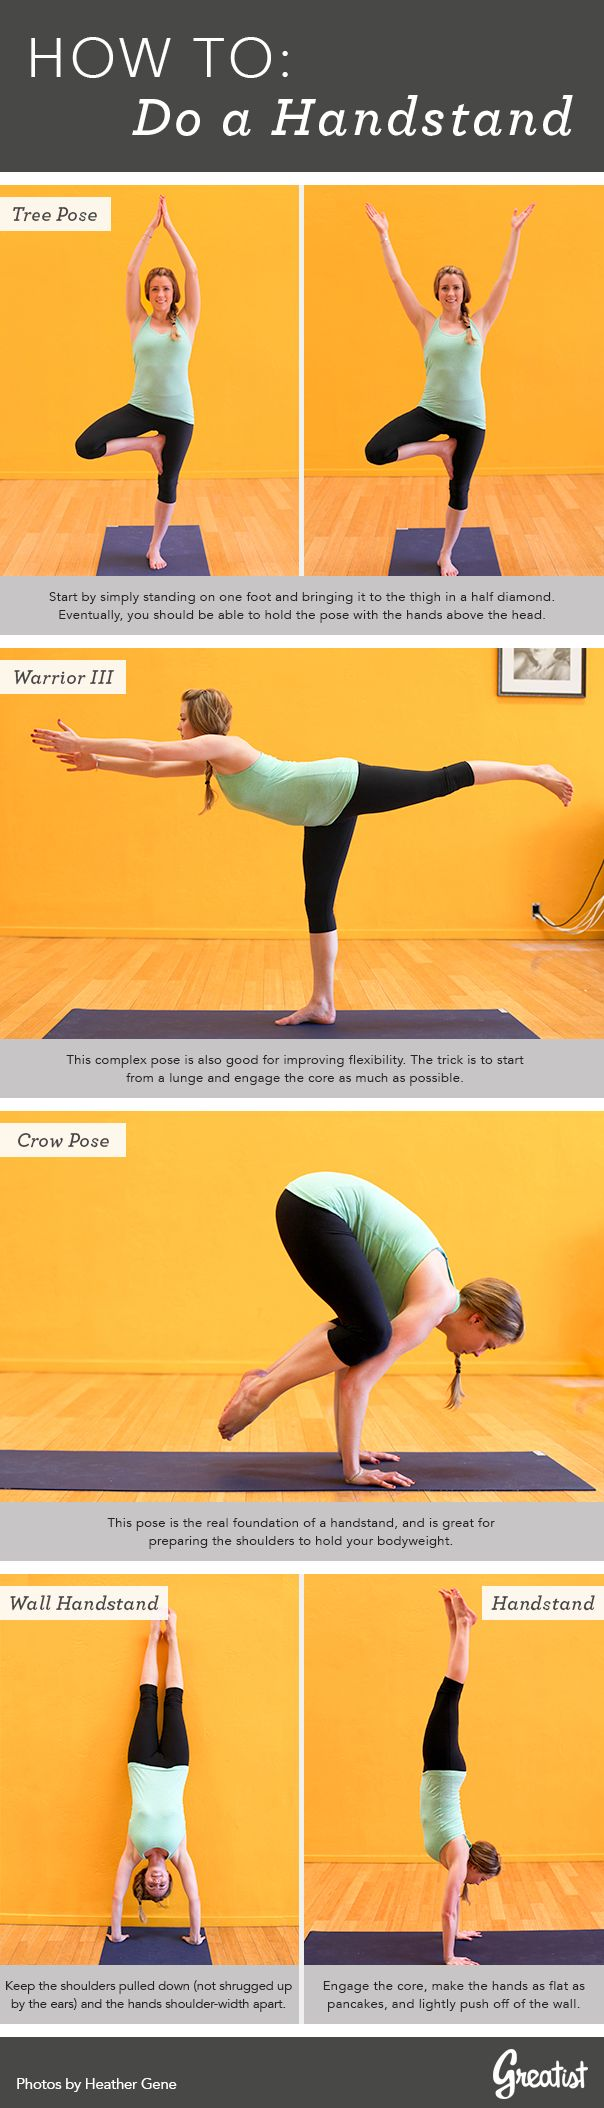 Handstands don't just look awesome, they improve strength and balance. #yoga http://greatist.com/fitness/so-you-want-to-do-a-handstand